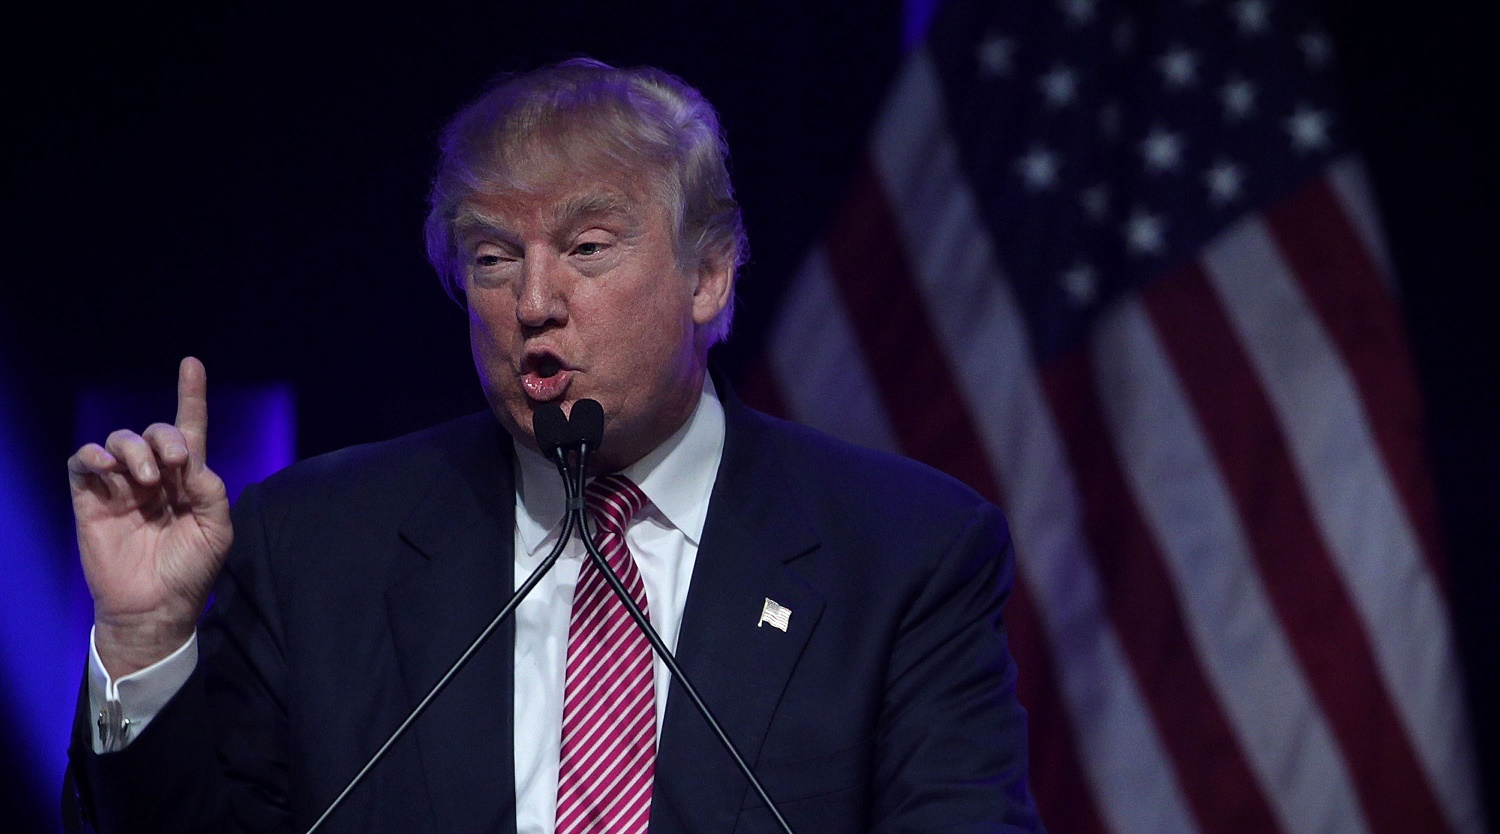 GOP Presidential Candidate Donald Trump Campaigns In Greenville, South Carolina